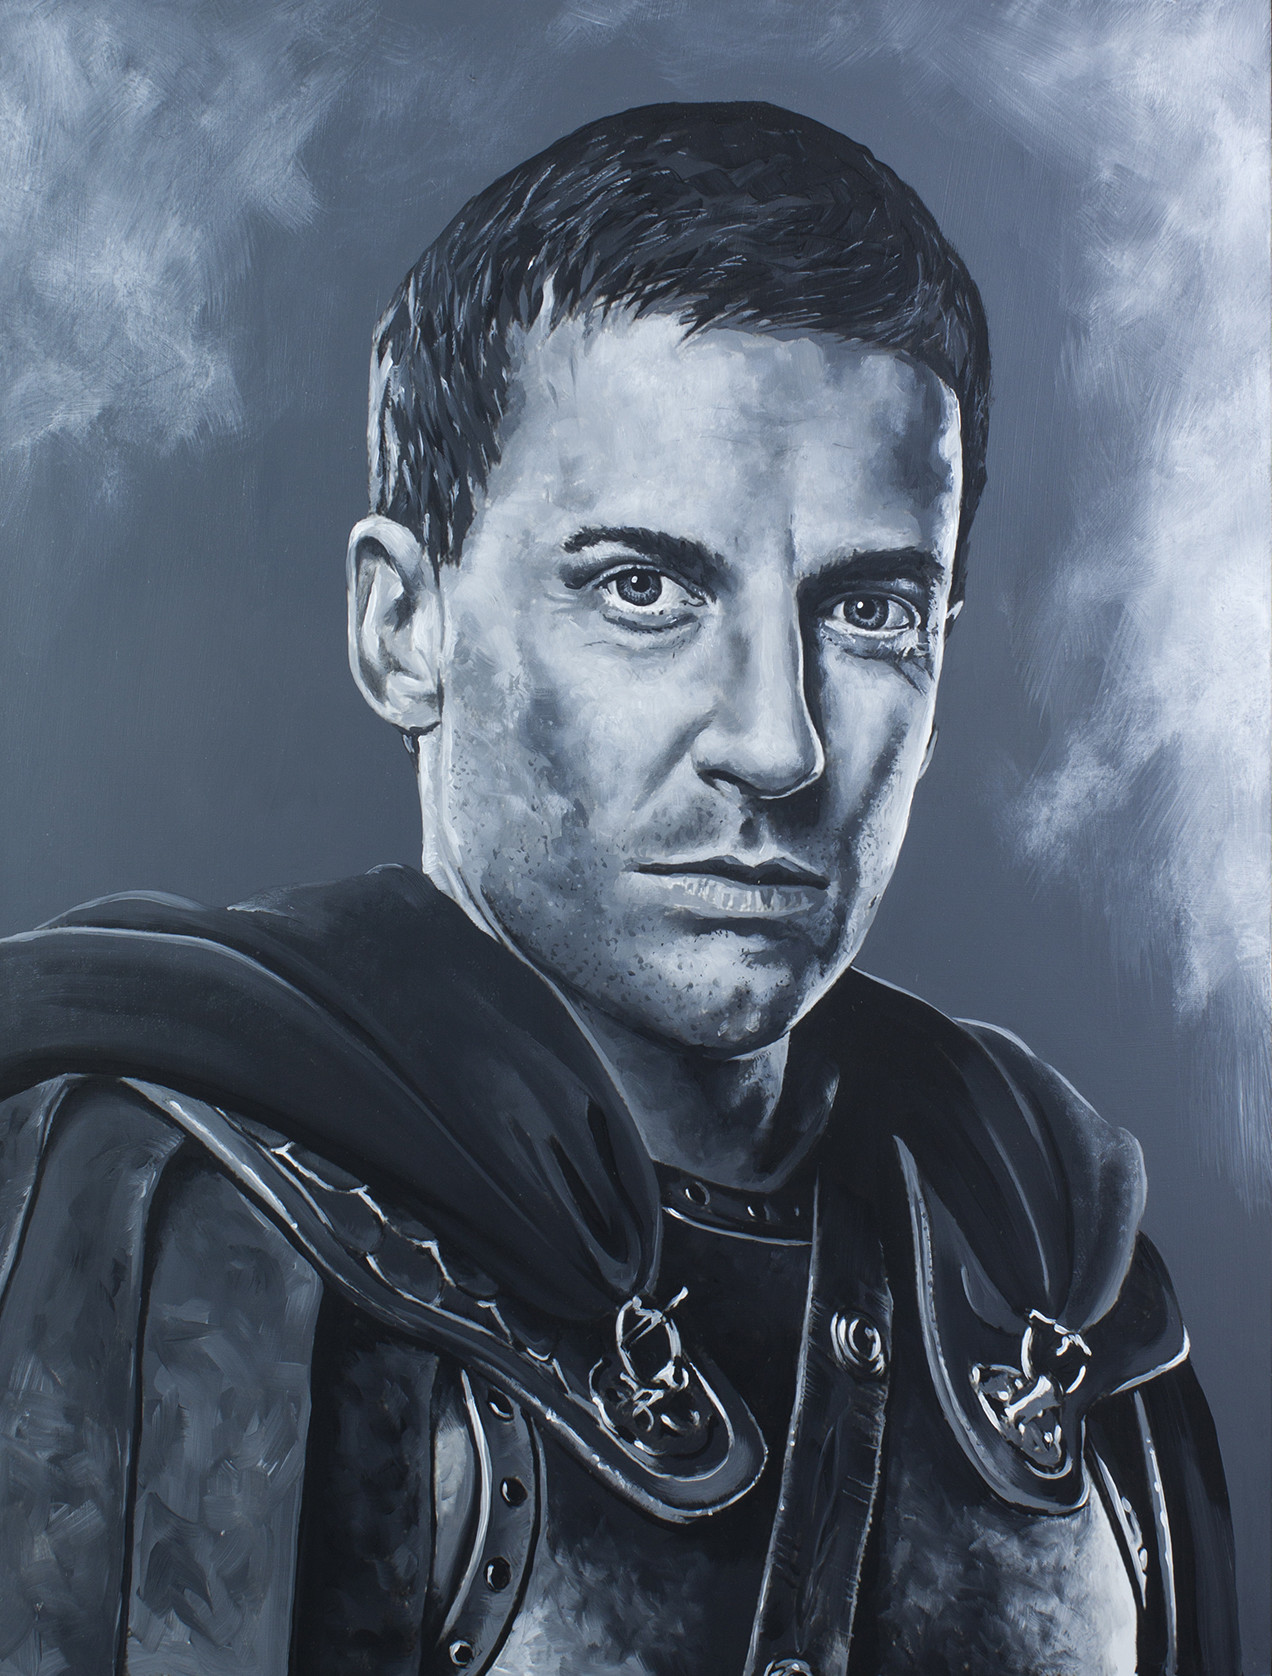 Claudius Glabber - Craig Parker Spartacus Series - Acrylic on board. 16x20